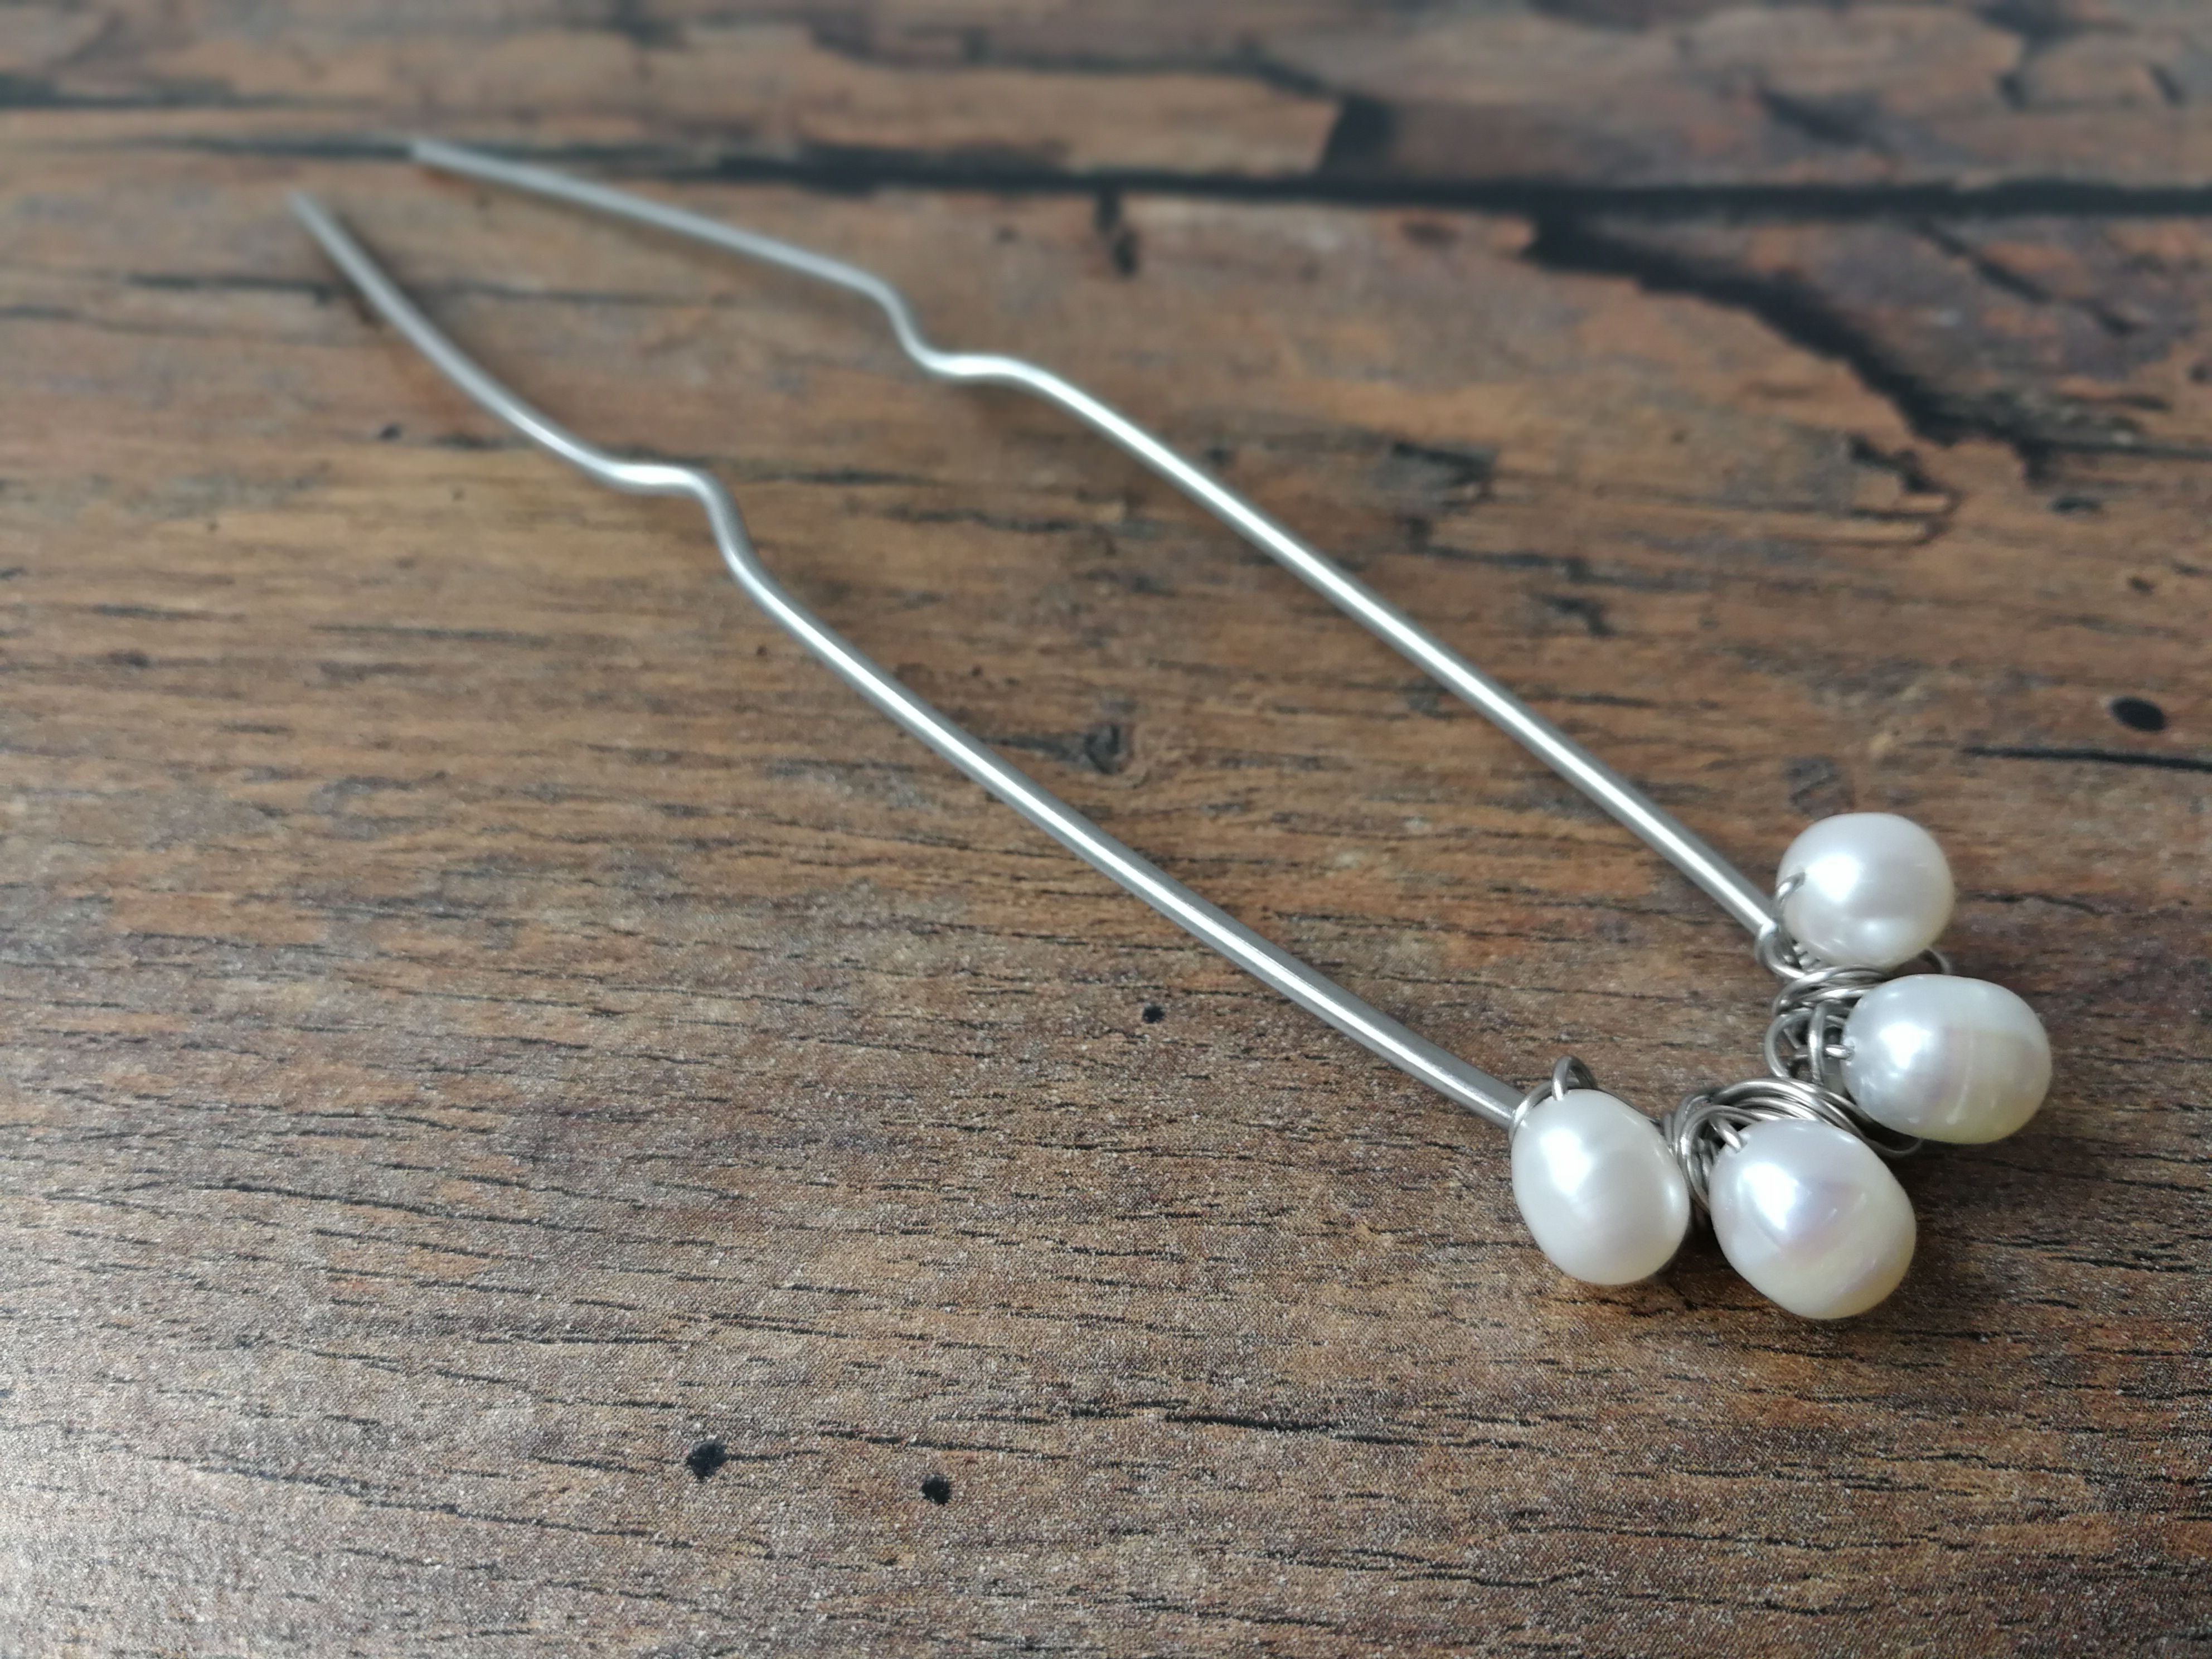 hair accessories fork wire steel stainless wrapped pearls jewelry freshwater wedding